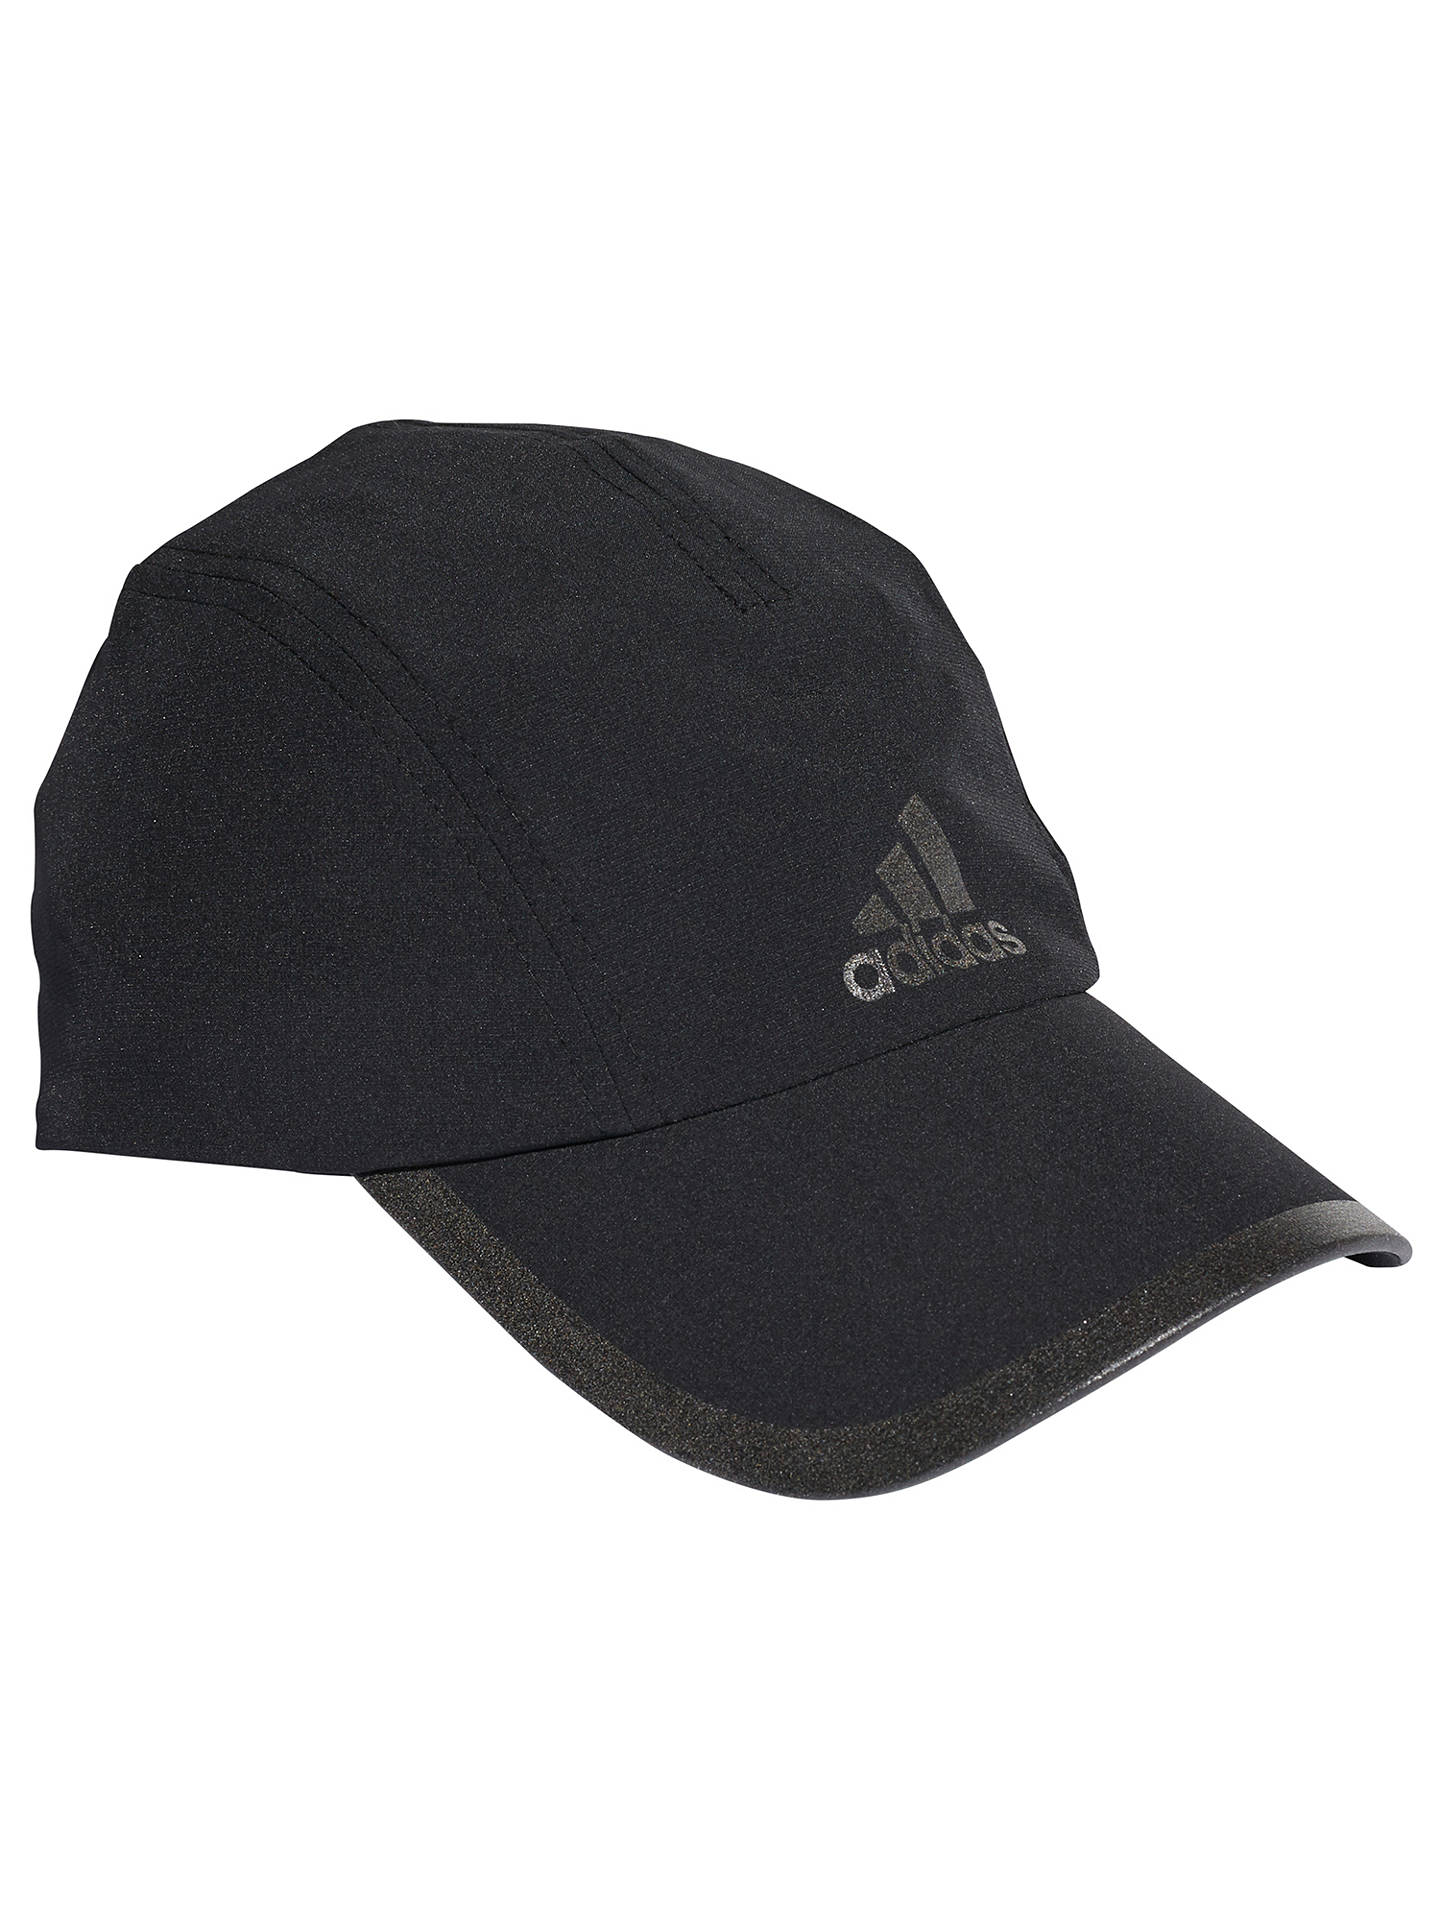 b73704199e69ab Buy adidas Climalite Running Cap, One Size, Black/Reflective Silver Online  at johnlewis ...